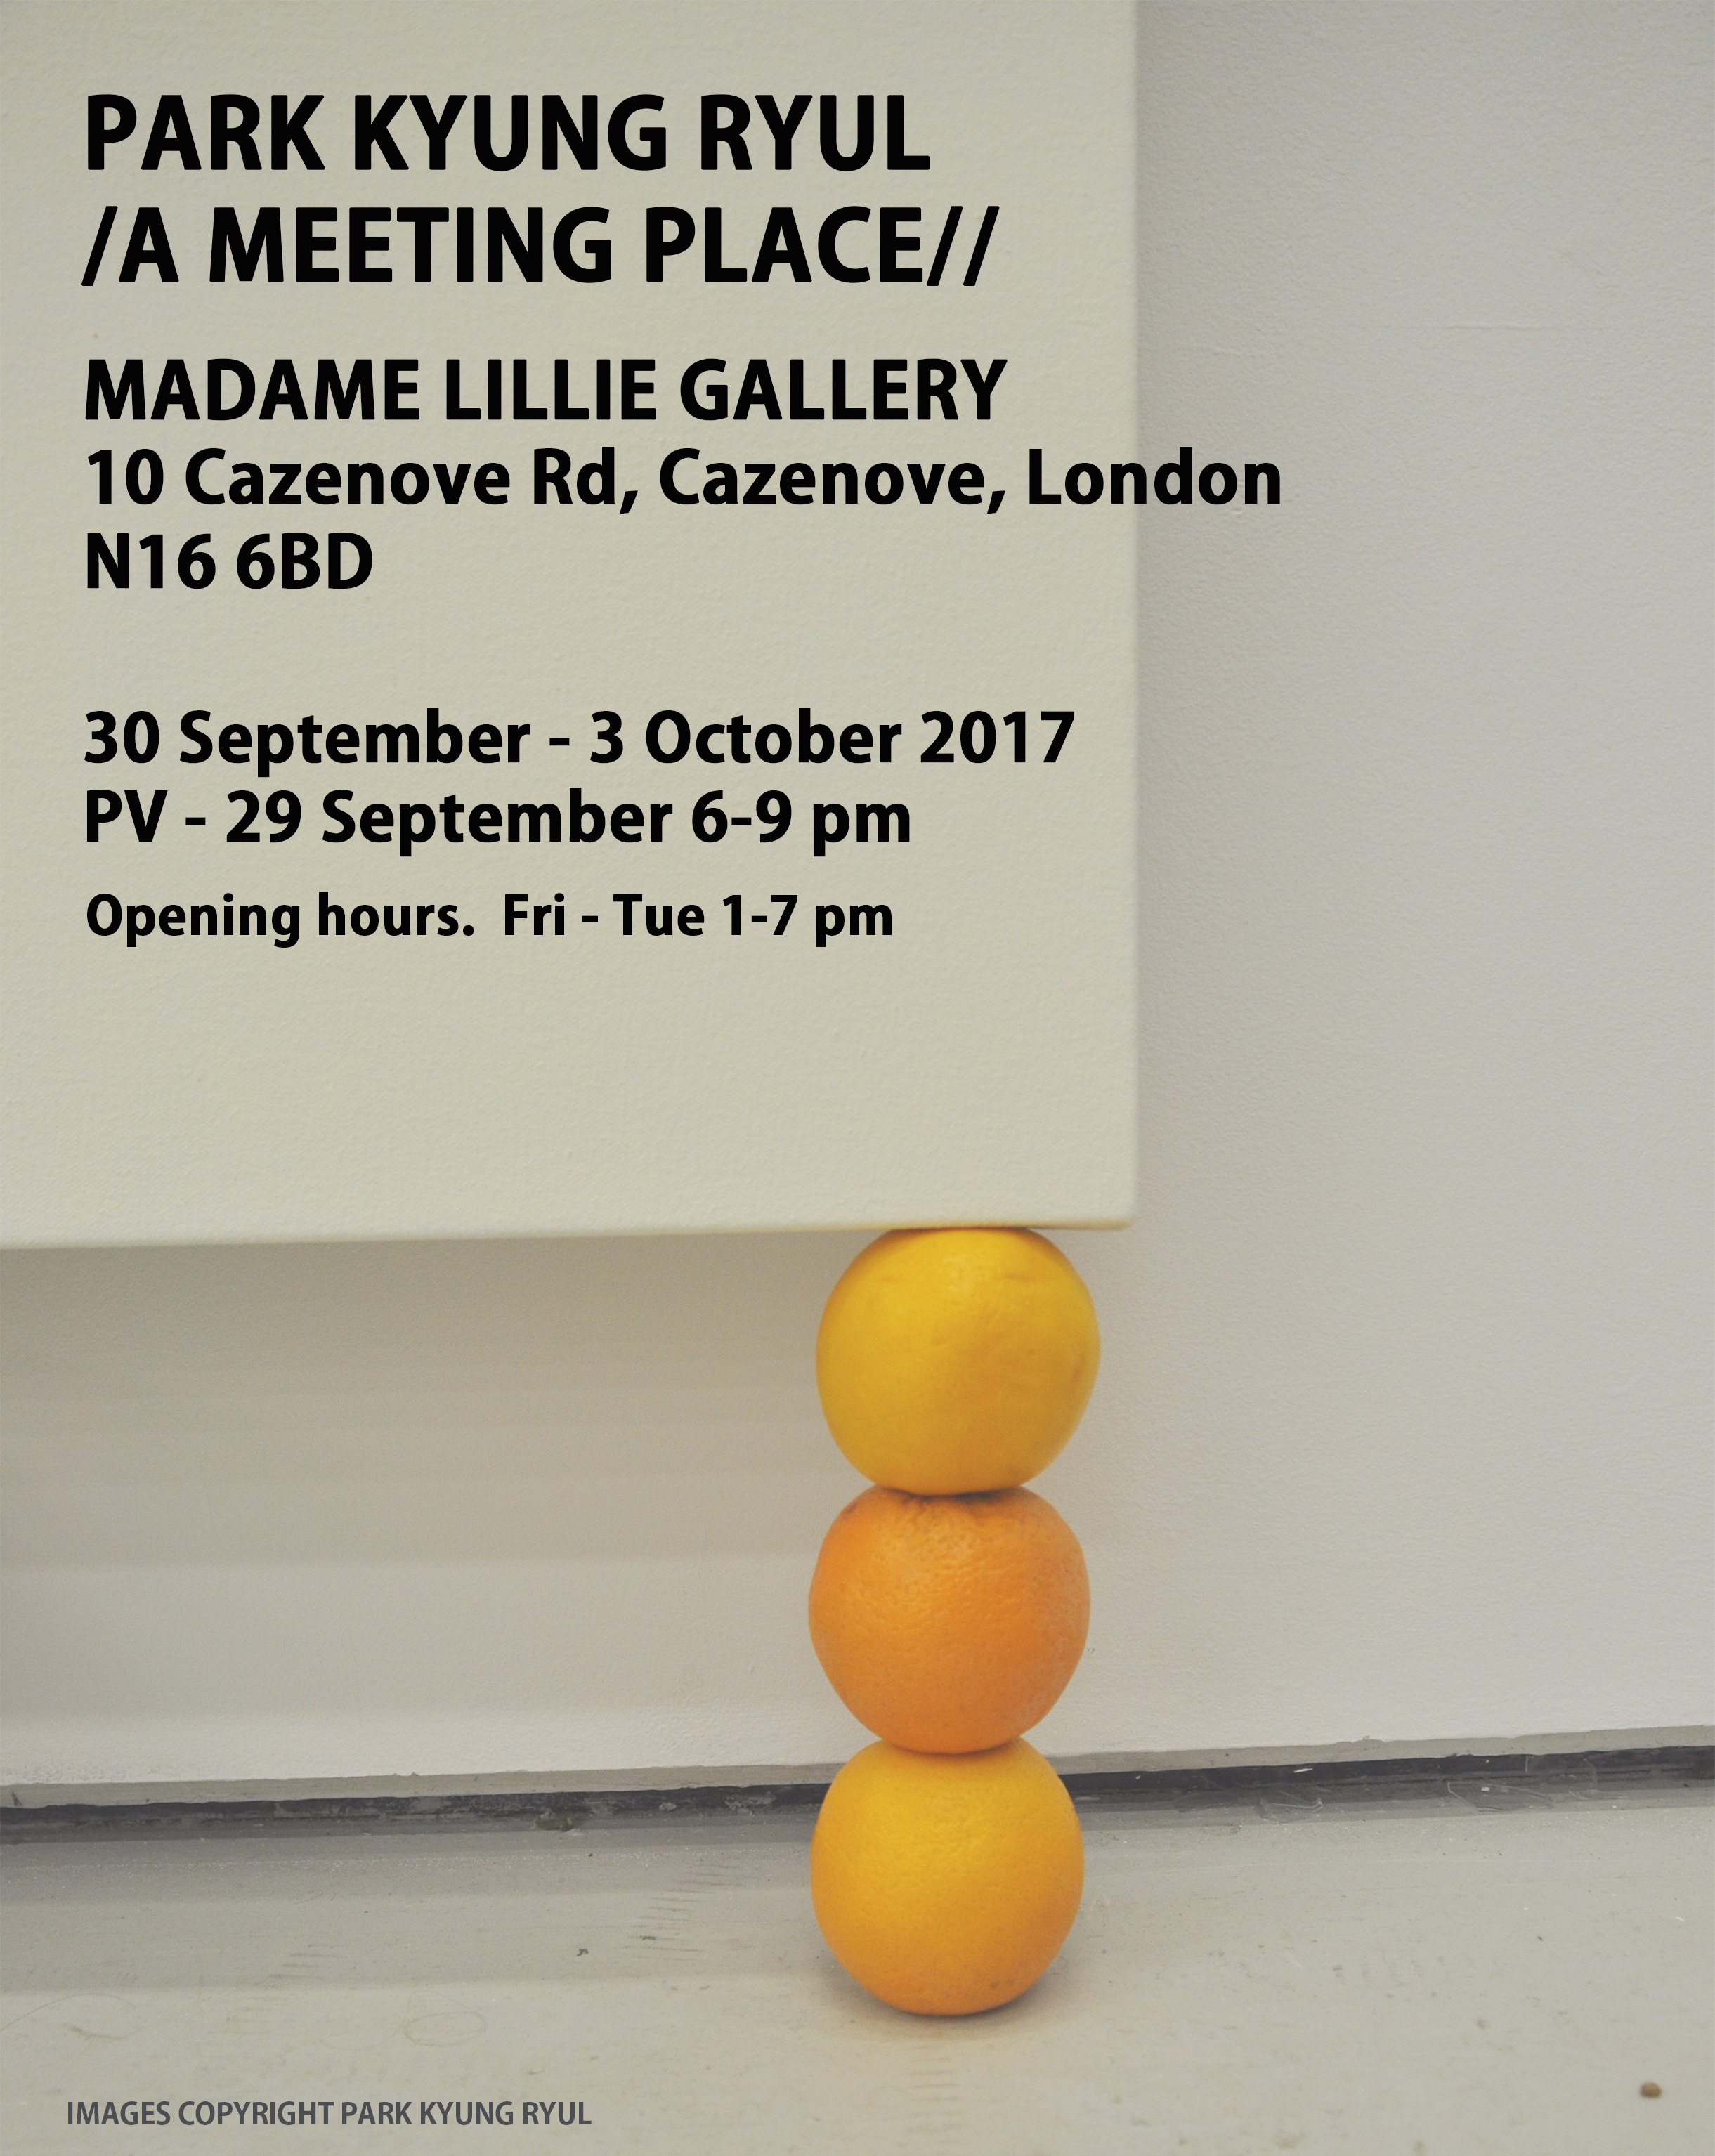 - A MEETING PLACEMADAME LILLES GALLERY30 SEP - 03 OCT 2017